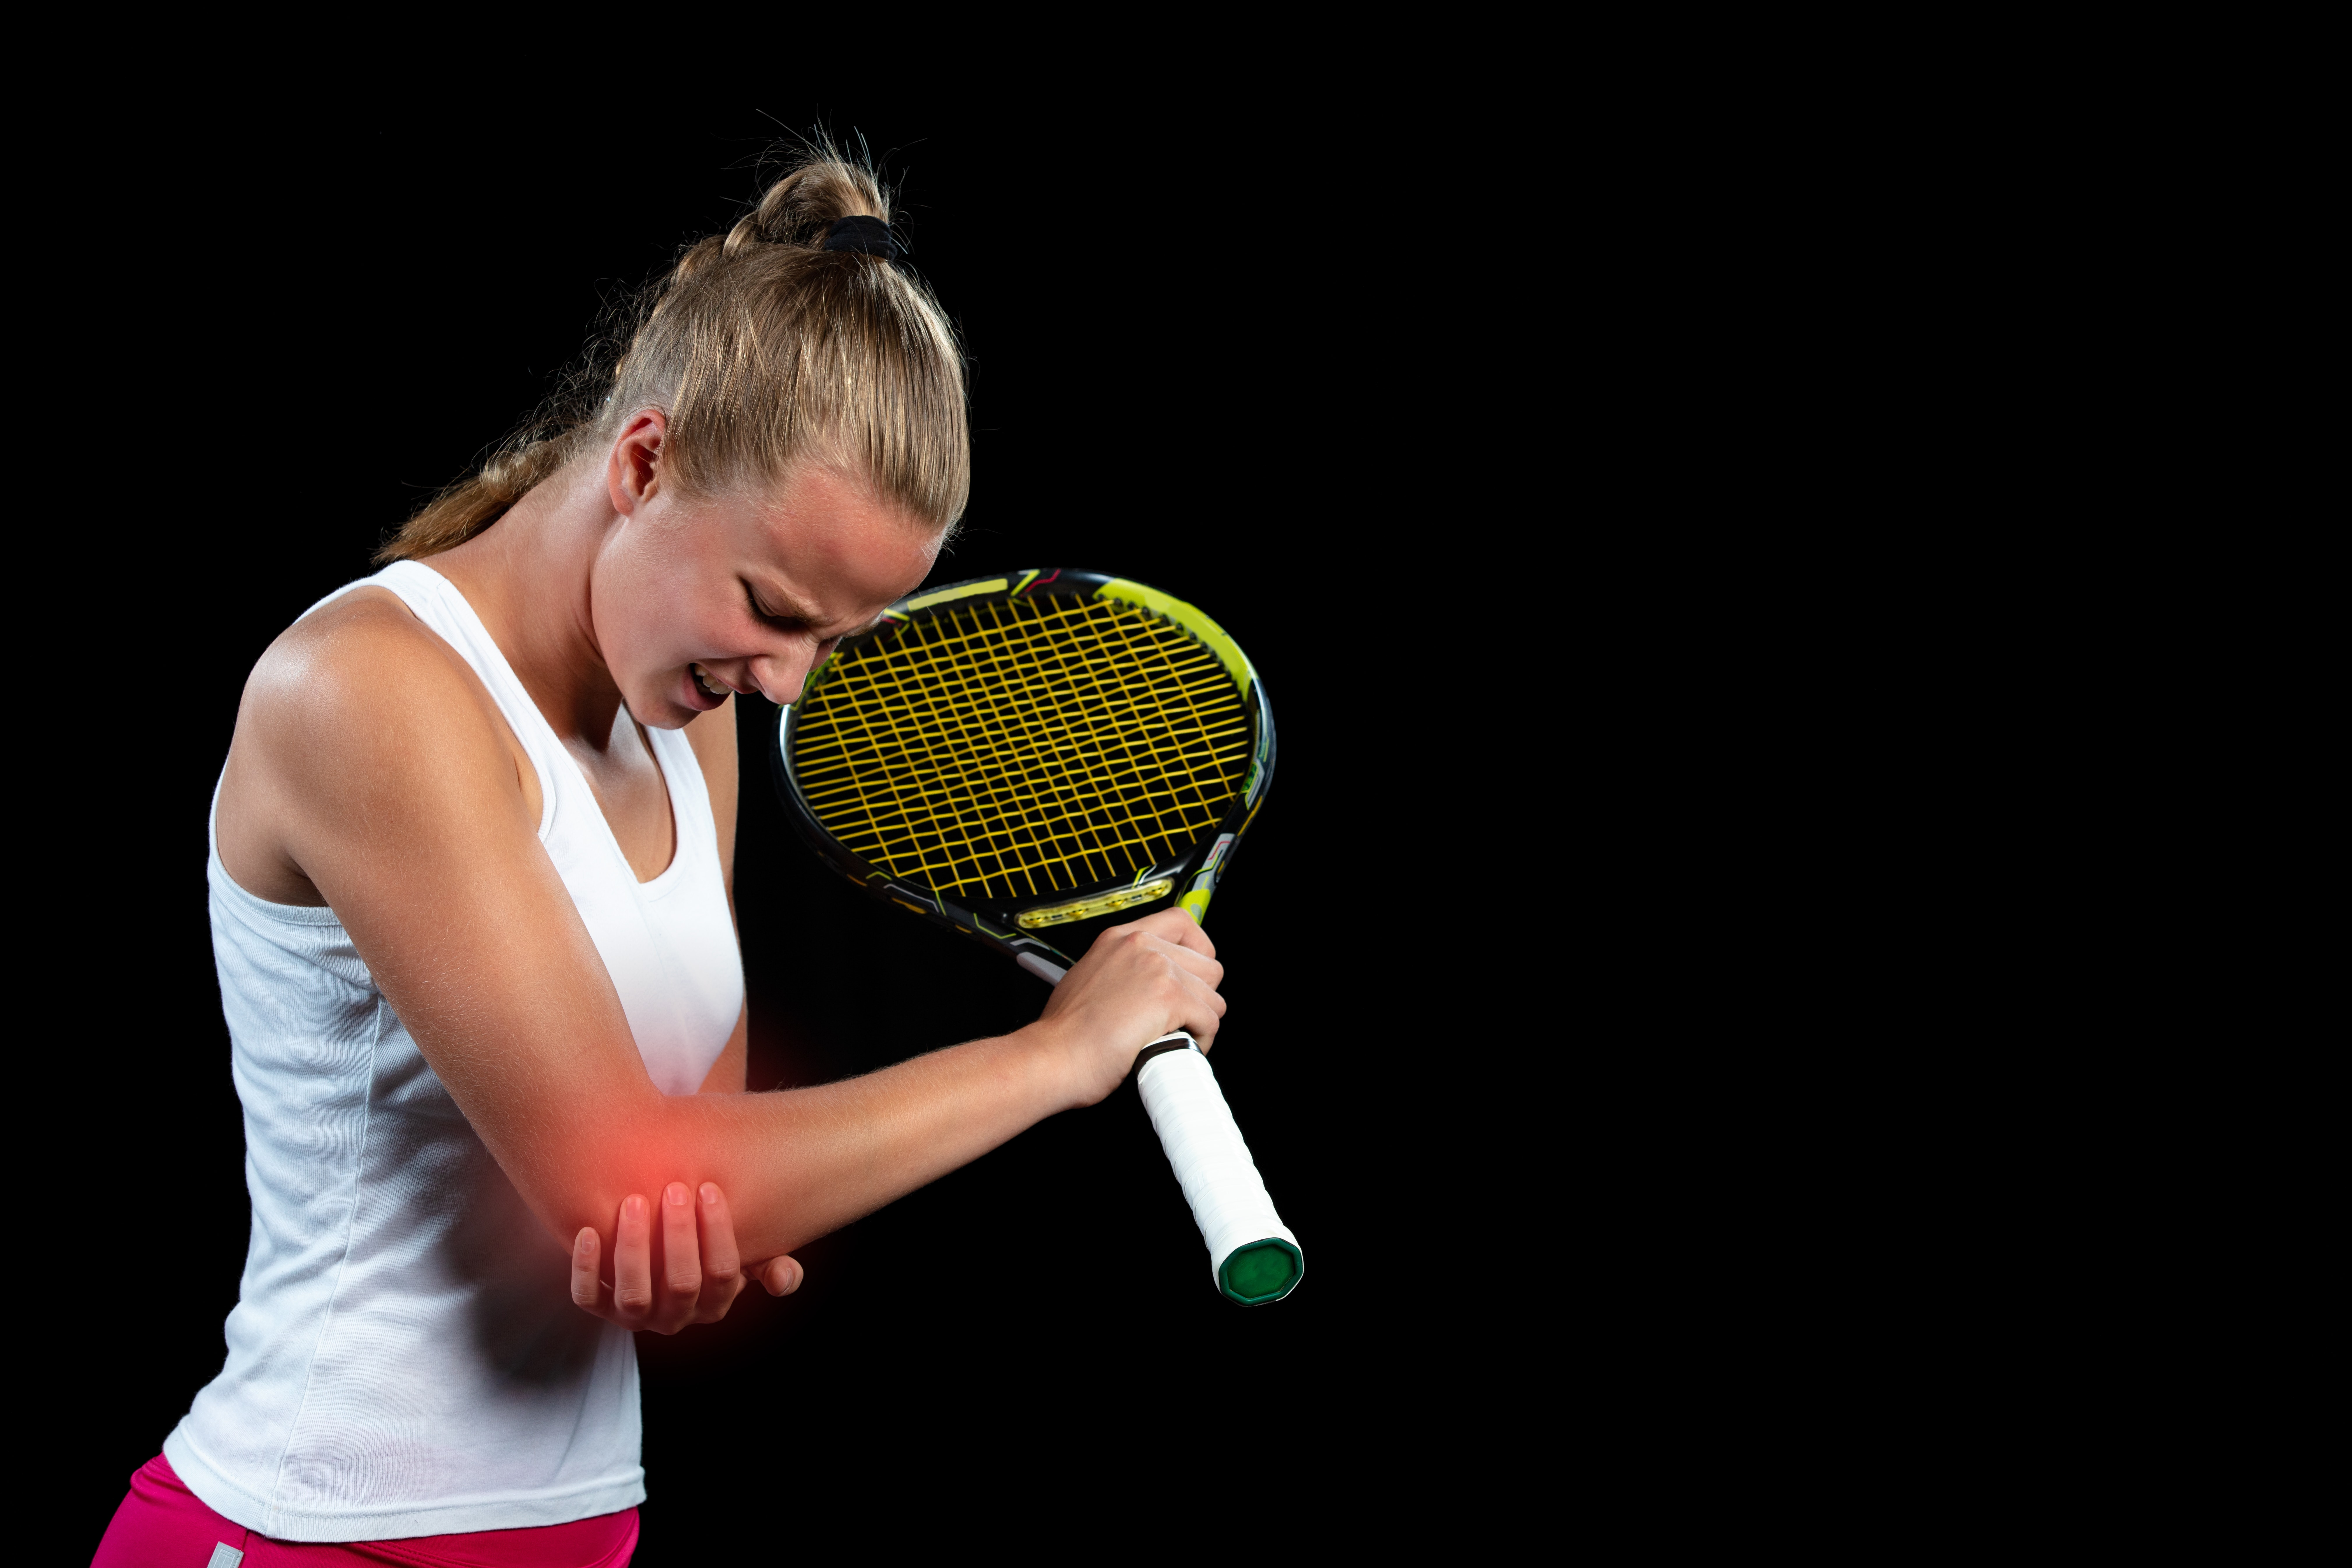 female tennis player holding painful elbow